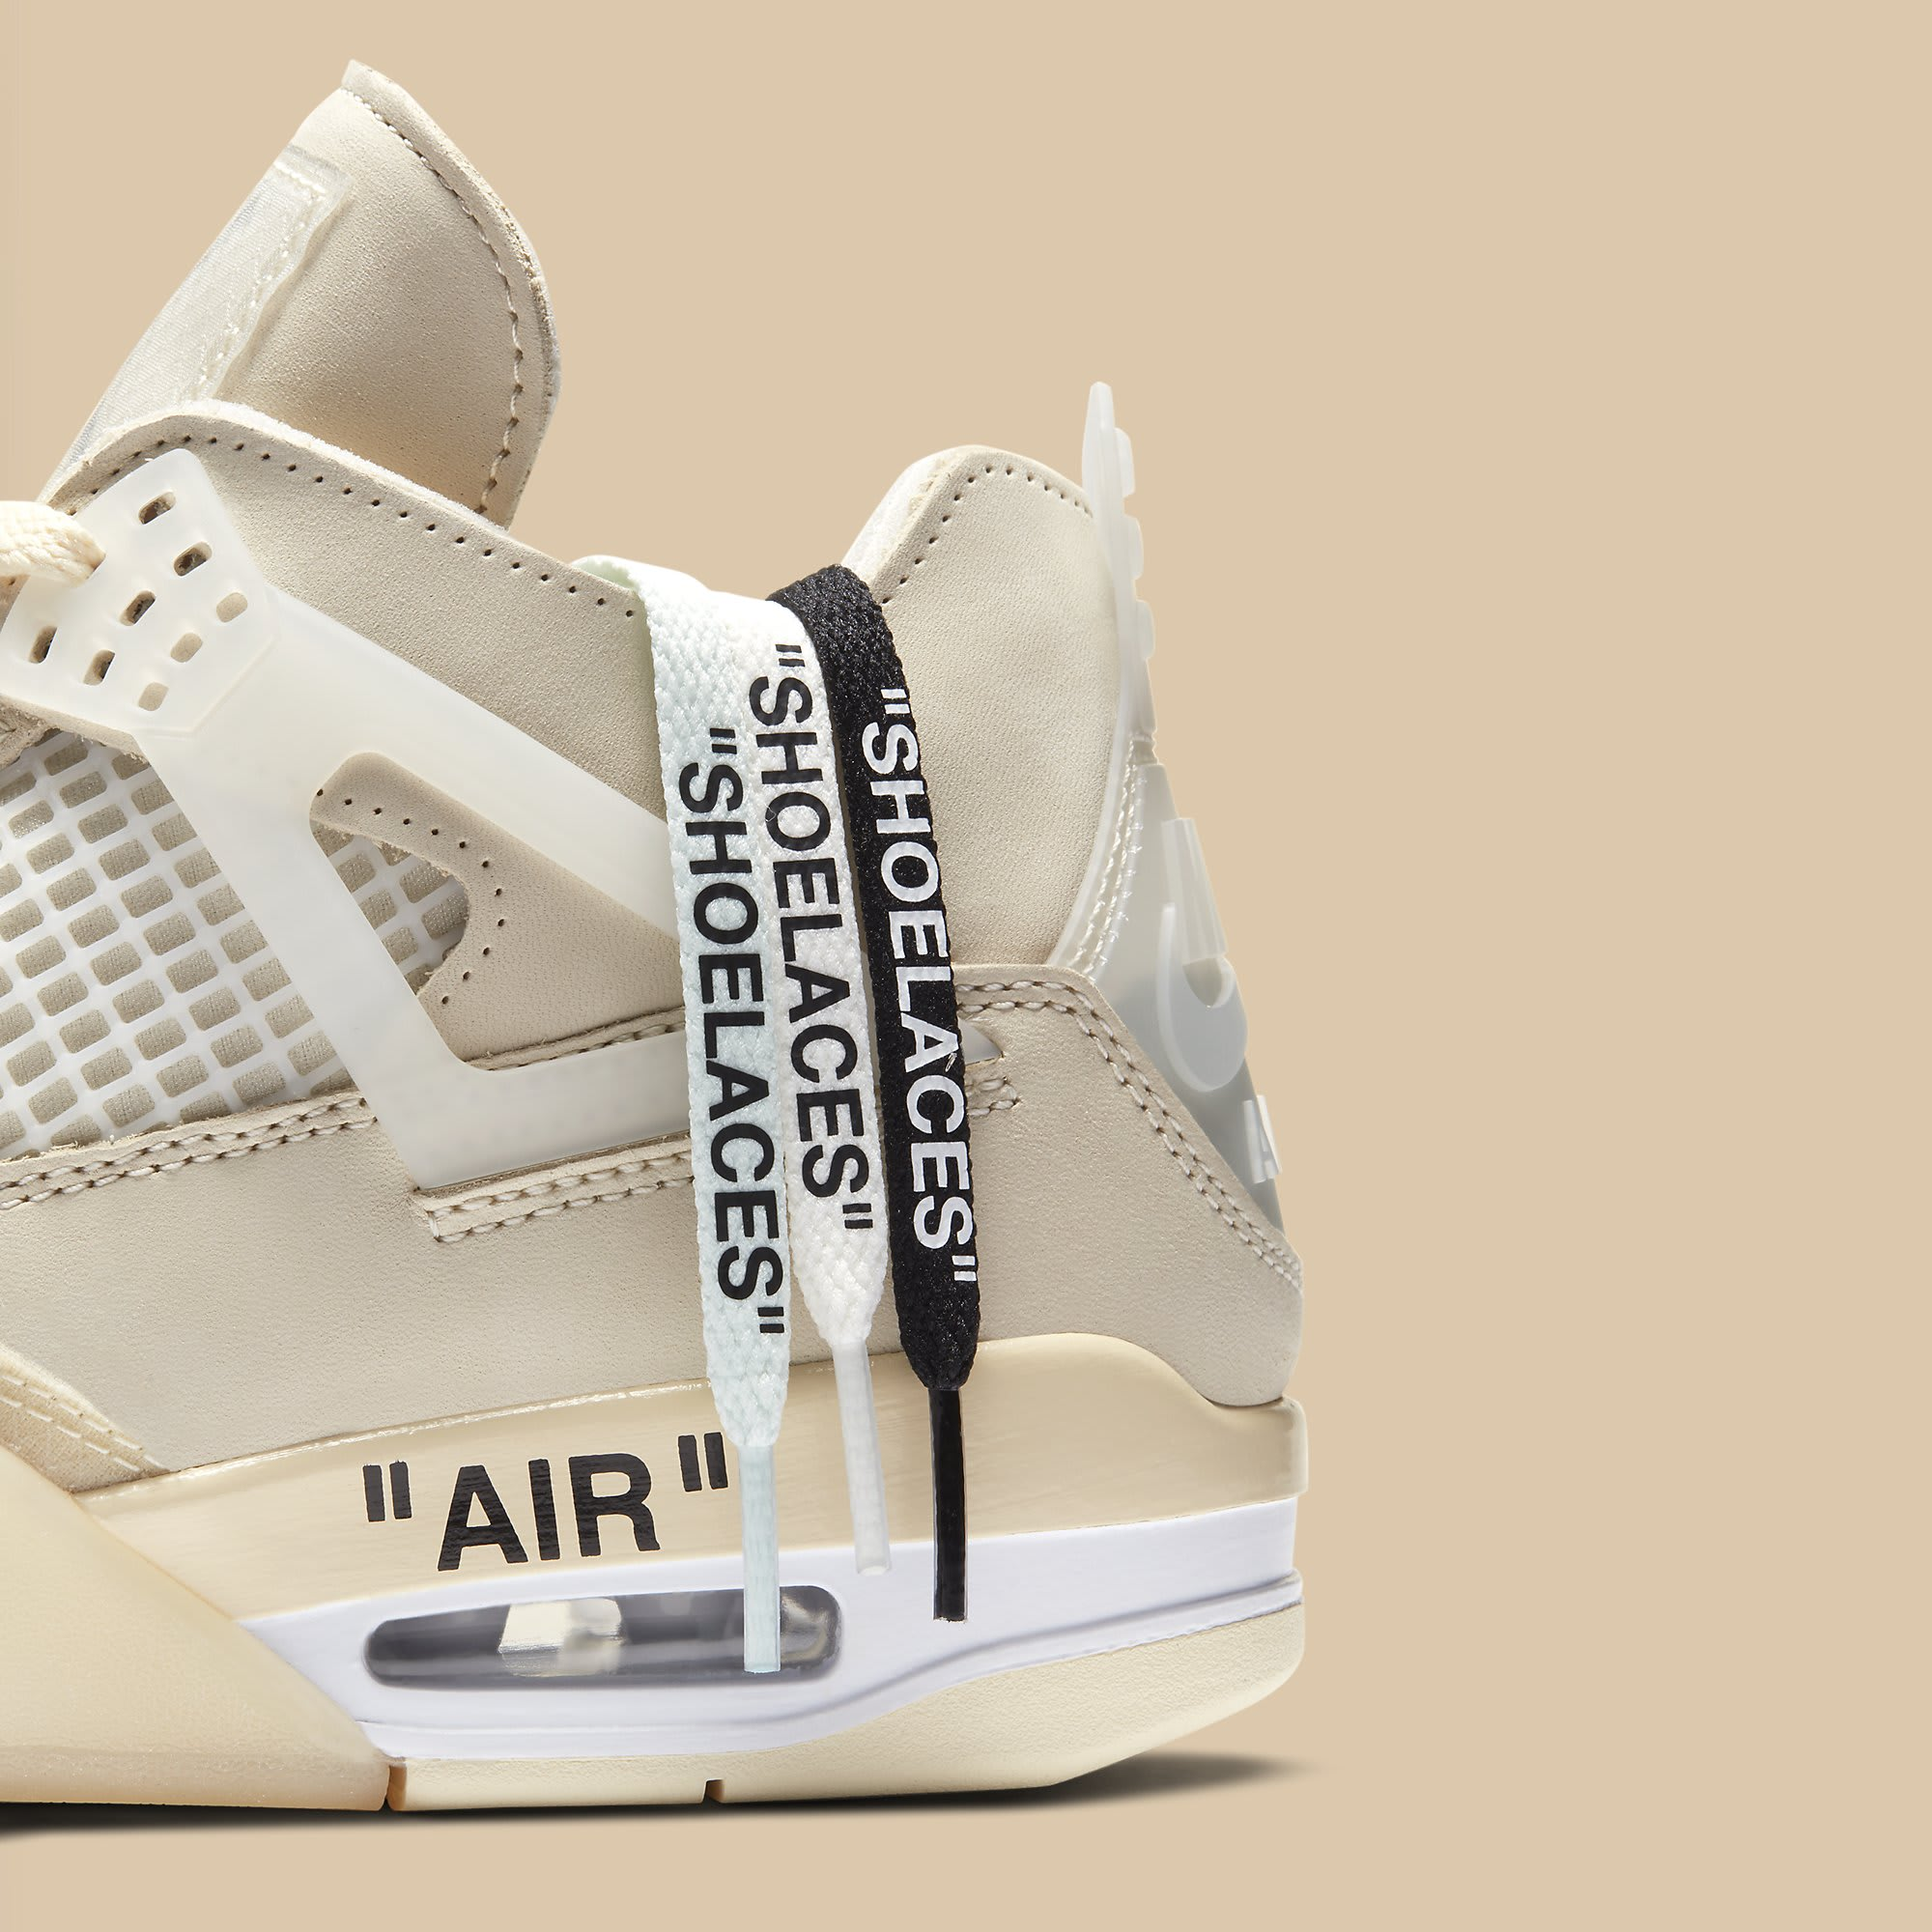 Off-White x Air Jordan 4 Sail Release Date CV9388-100 Laces